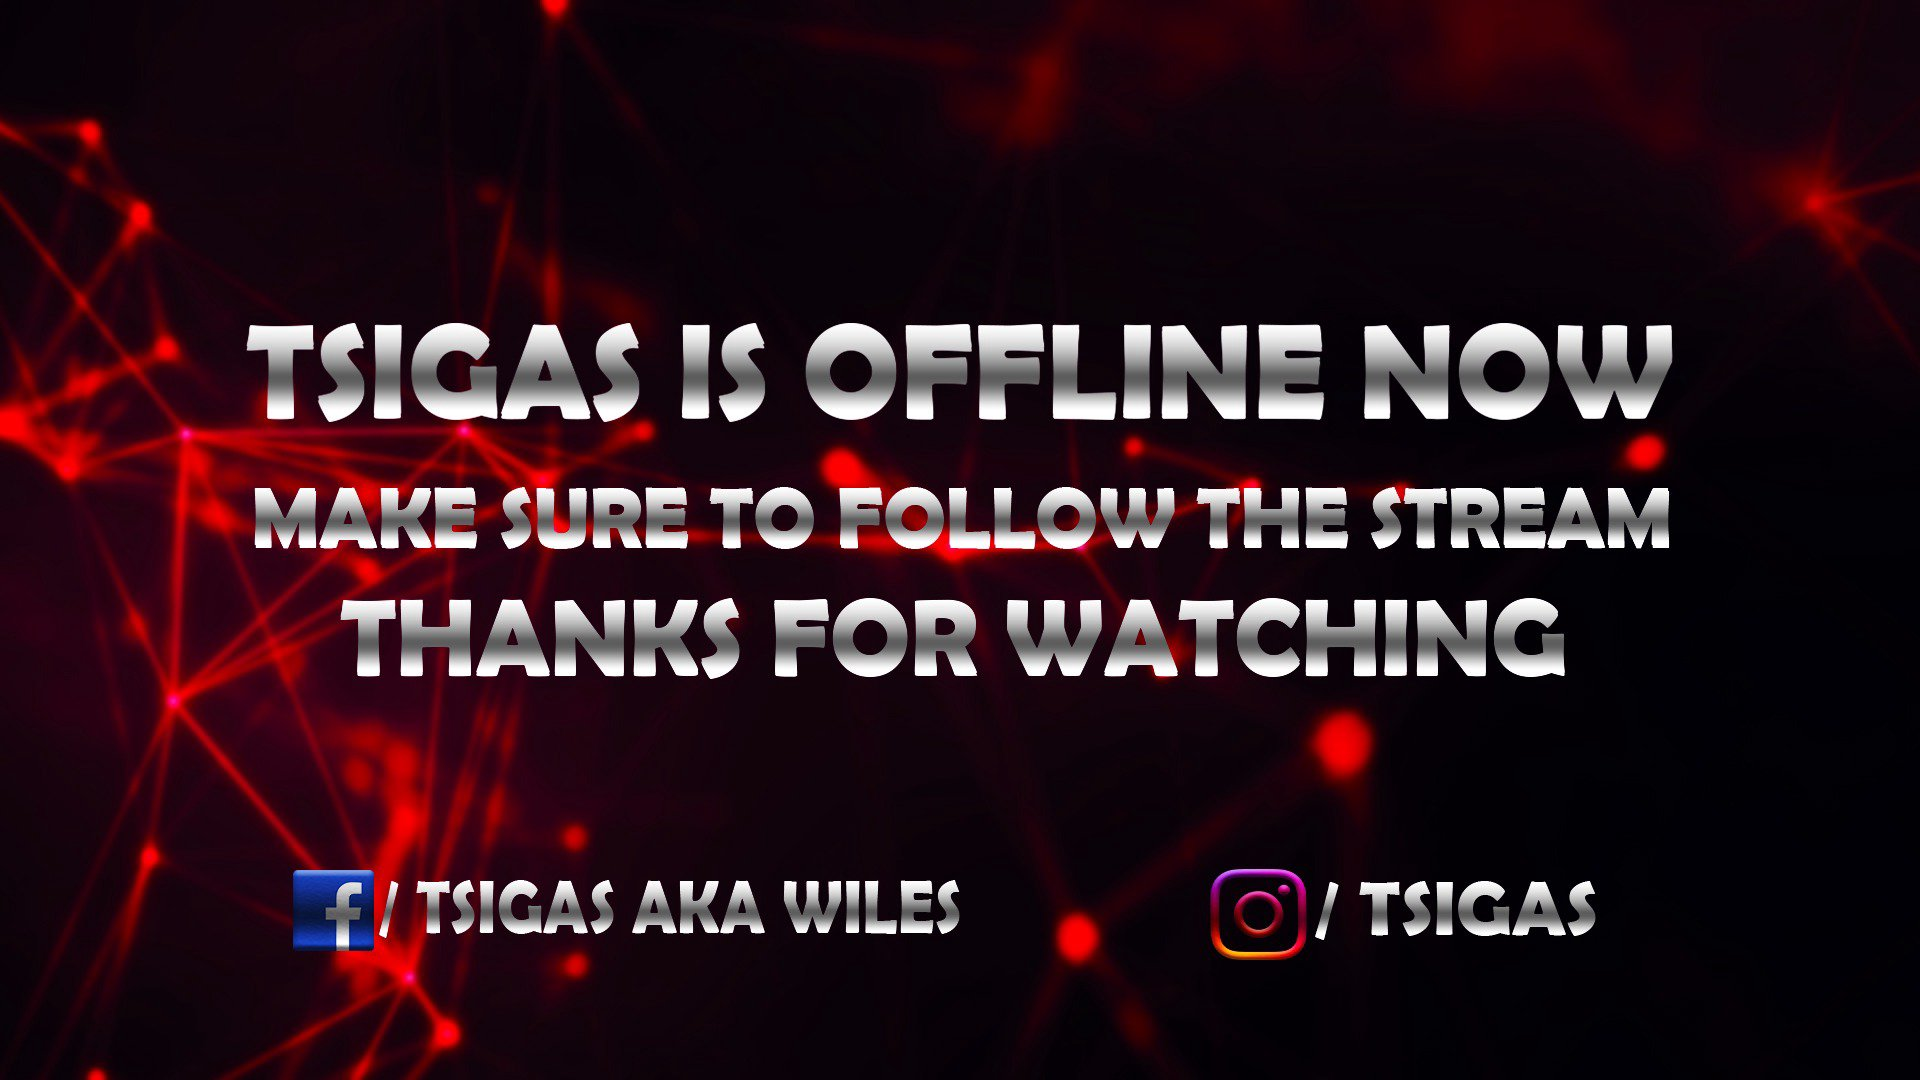 Twitch stream of tsigas